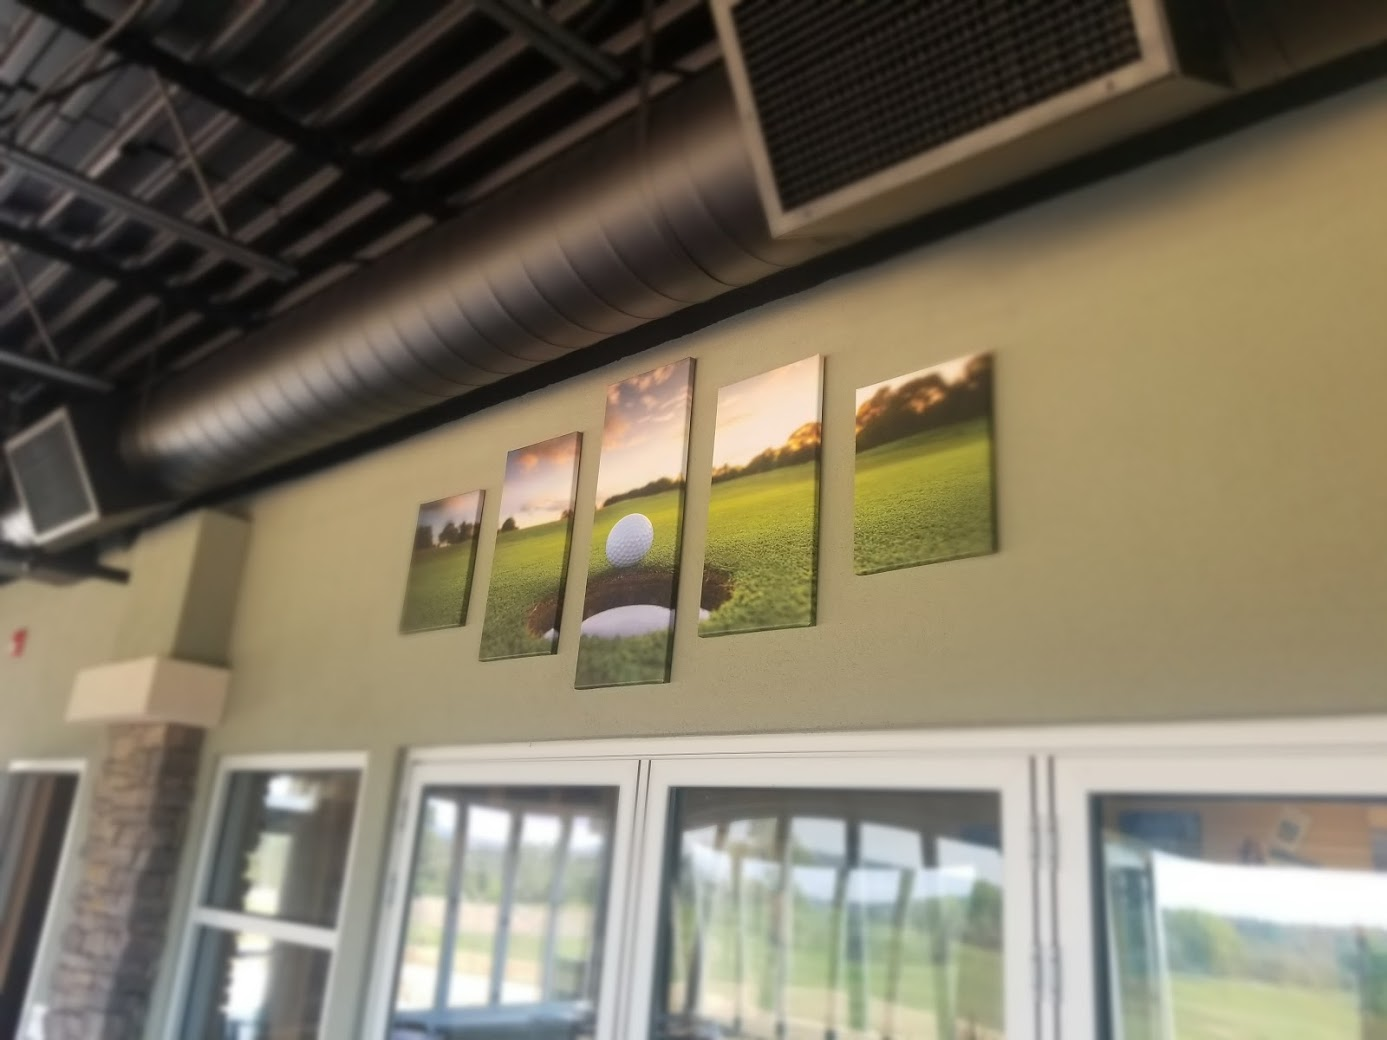 pictures of golf on the wall